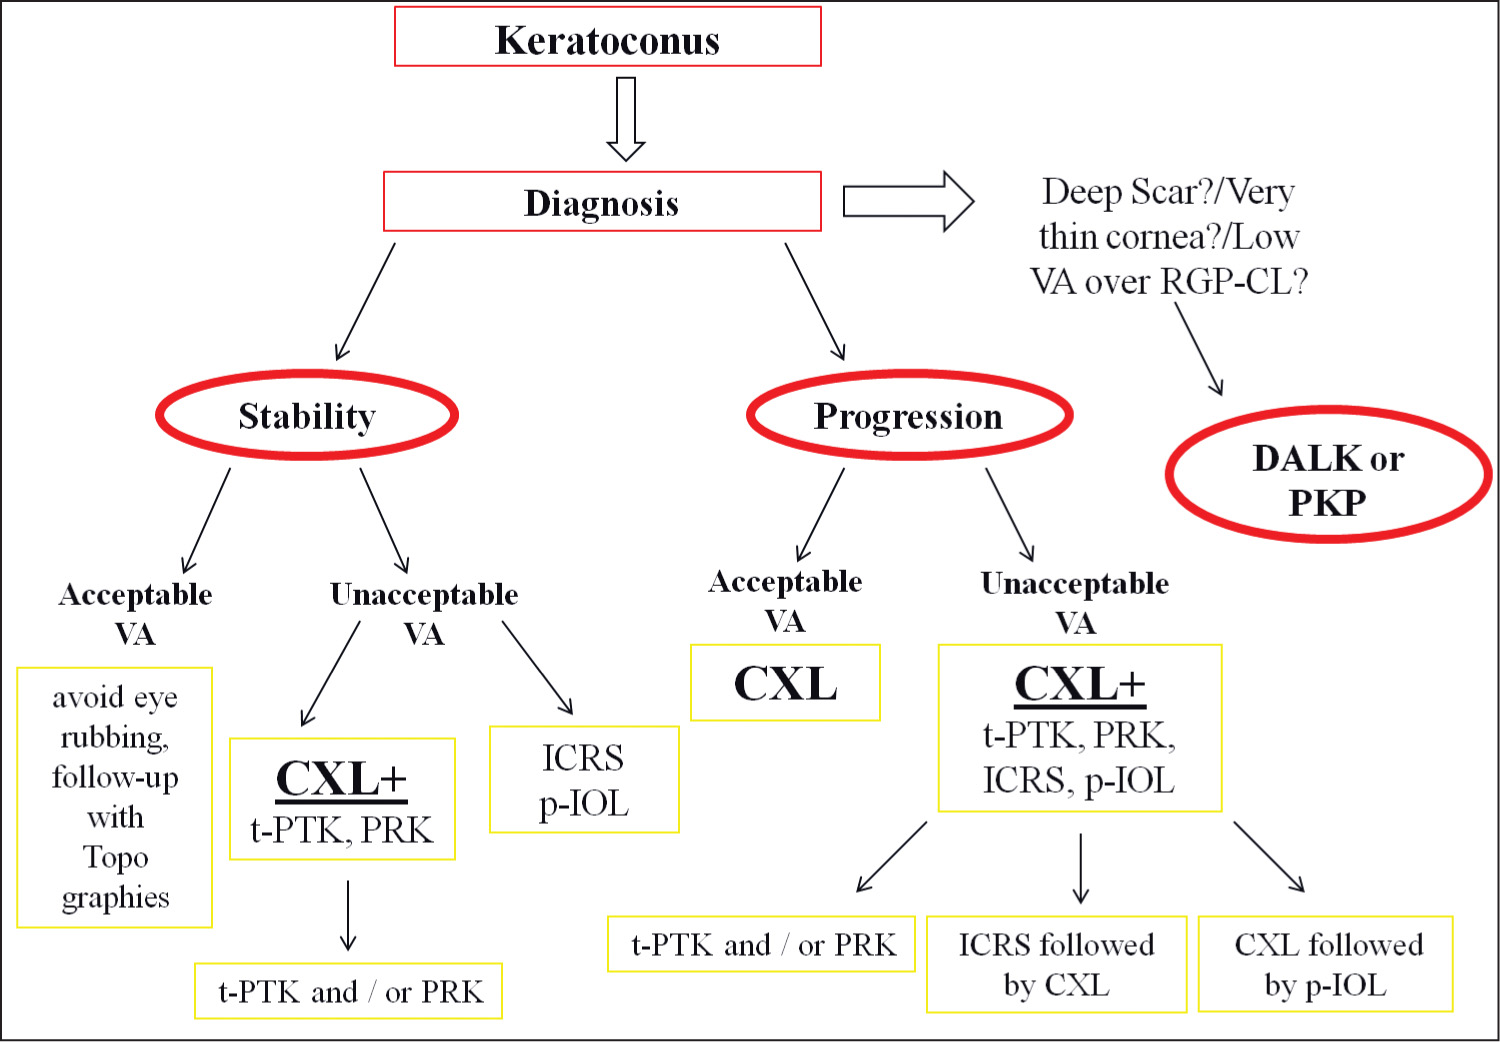 Proposed treatment algorithm (decision tree) for patient management after keratoconus diagnosis. Decisions are made considering the stability or progression of keratoconus and the functional vision. VA = visual acuity; RGP-CL = rigid gas permeable contact lens; DALK = deep anterior lamellar keratoplasty; PKP = penetrating keratoplasty; CXL = corneal collagen cross-linking; t-PTK = transepithelial phototherapeutic keratectomy; PRK = photorefractive keratectomy; ICRS = intrastromal corneal ring segments; PIOL = phakic intraocular lens